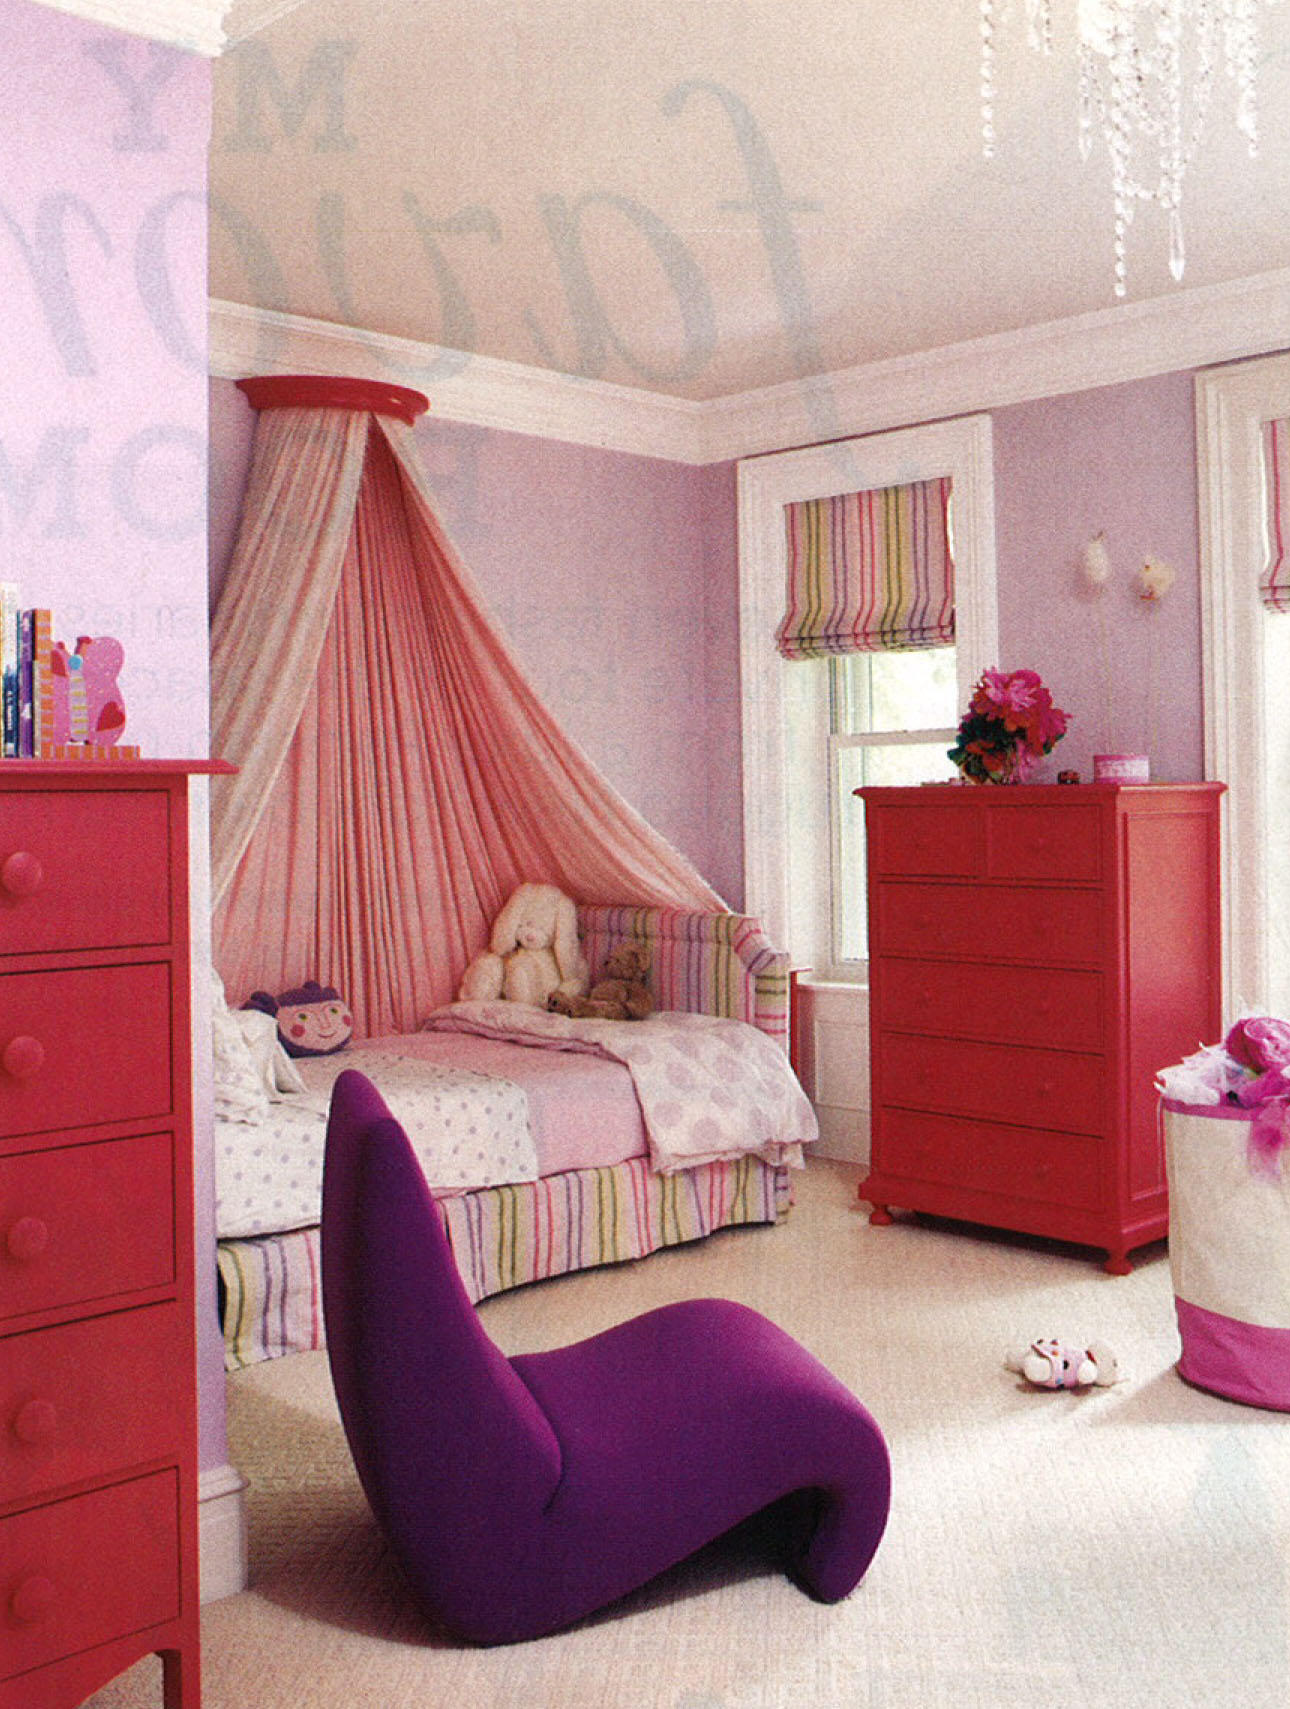 1290x1709px 12 Lovely Girls Bedroom Furniture Ideas Picture in Bedroom